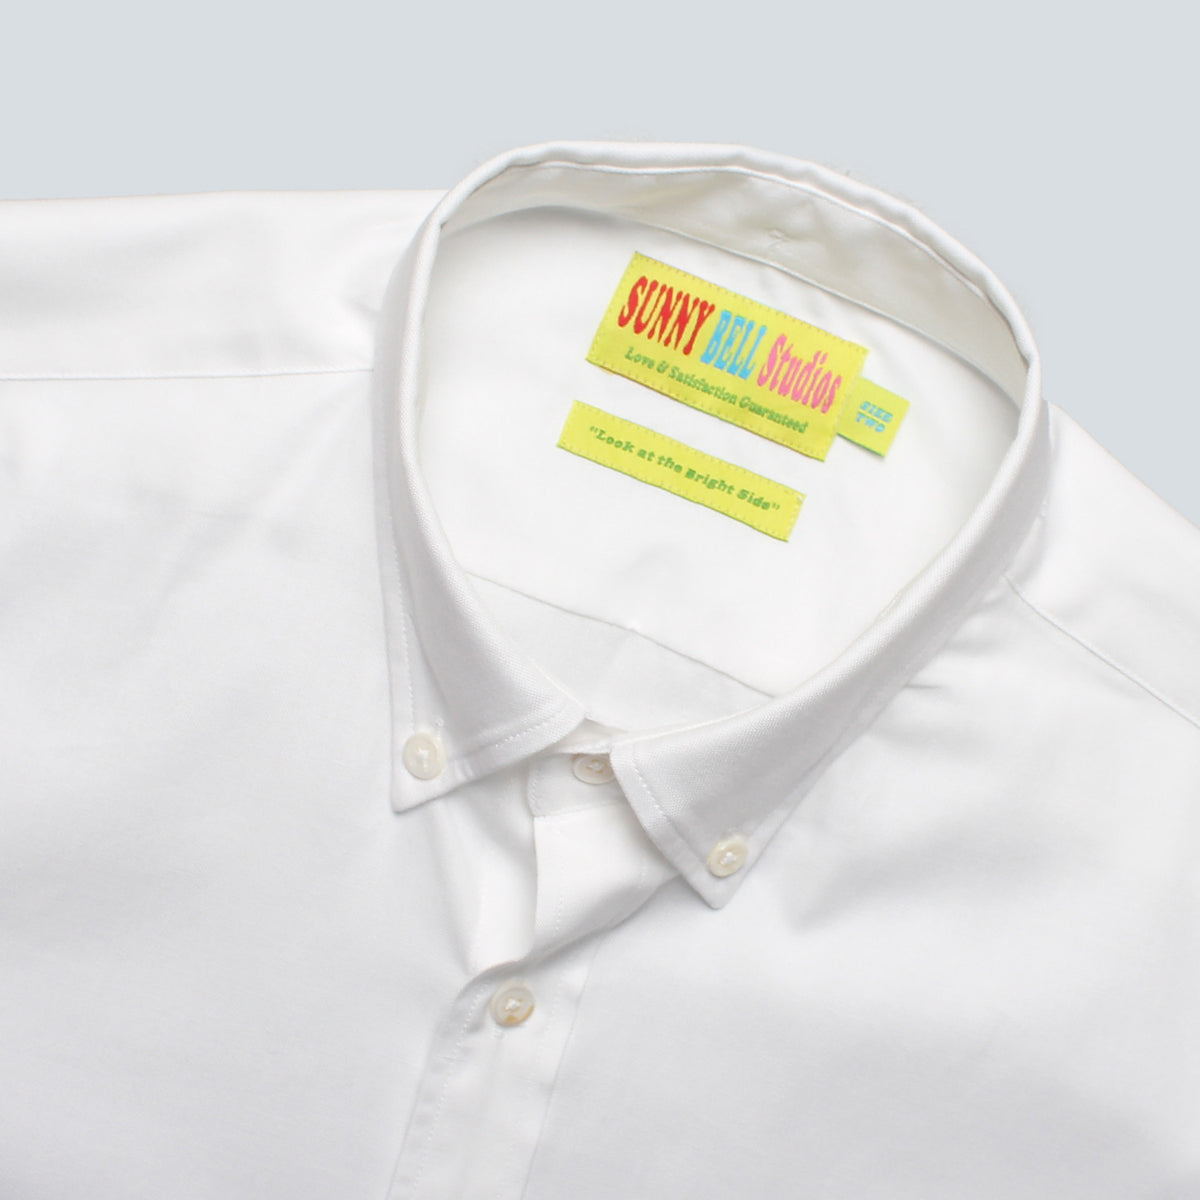 Sunny Bell Studios - Oxford Shirt - White